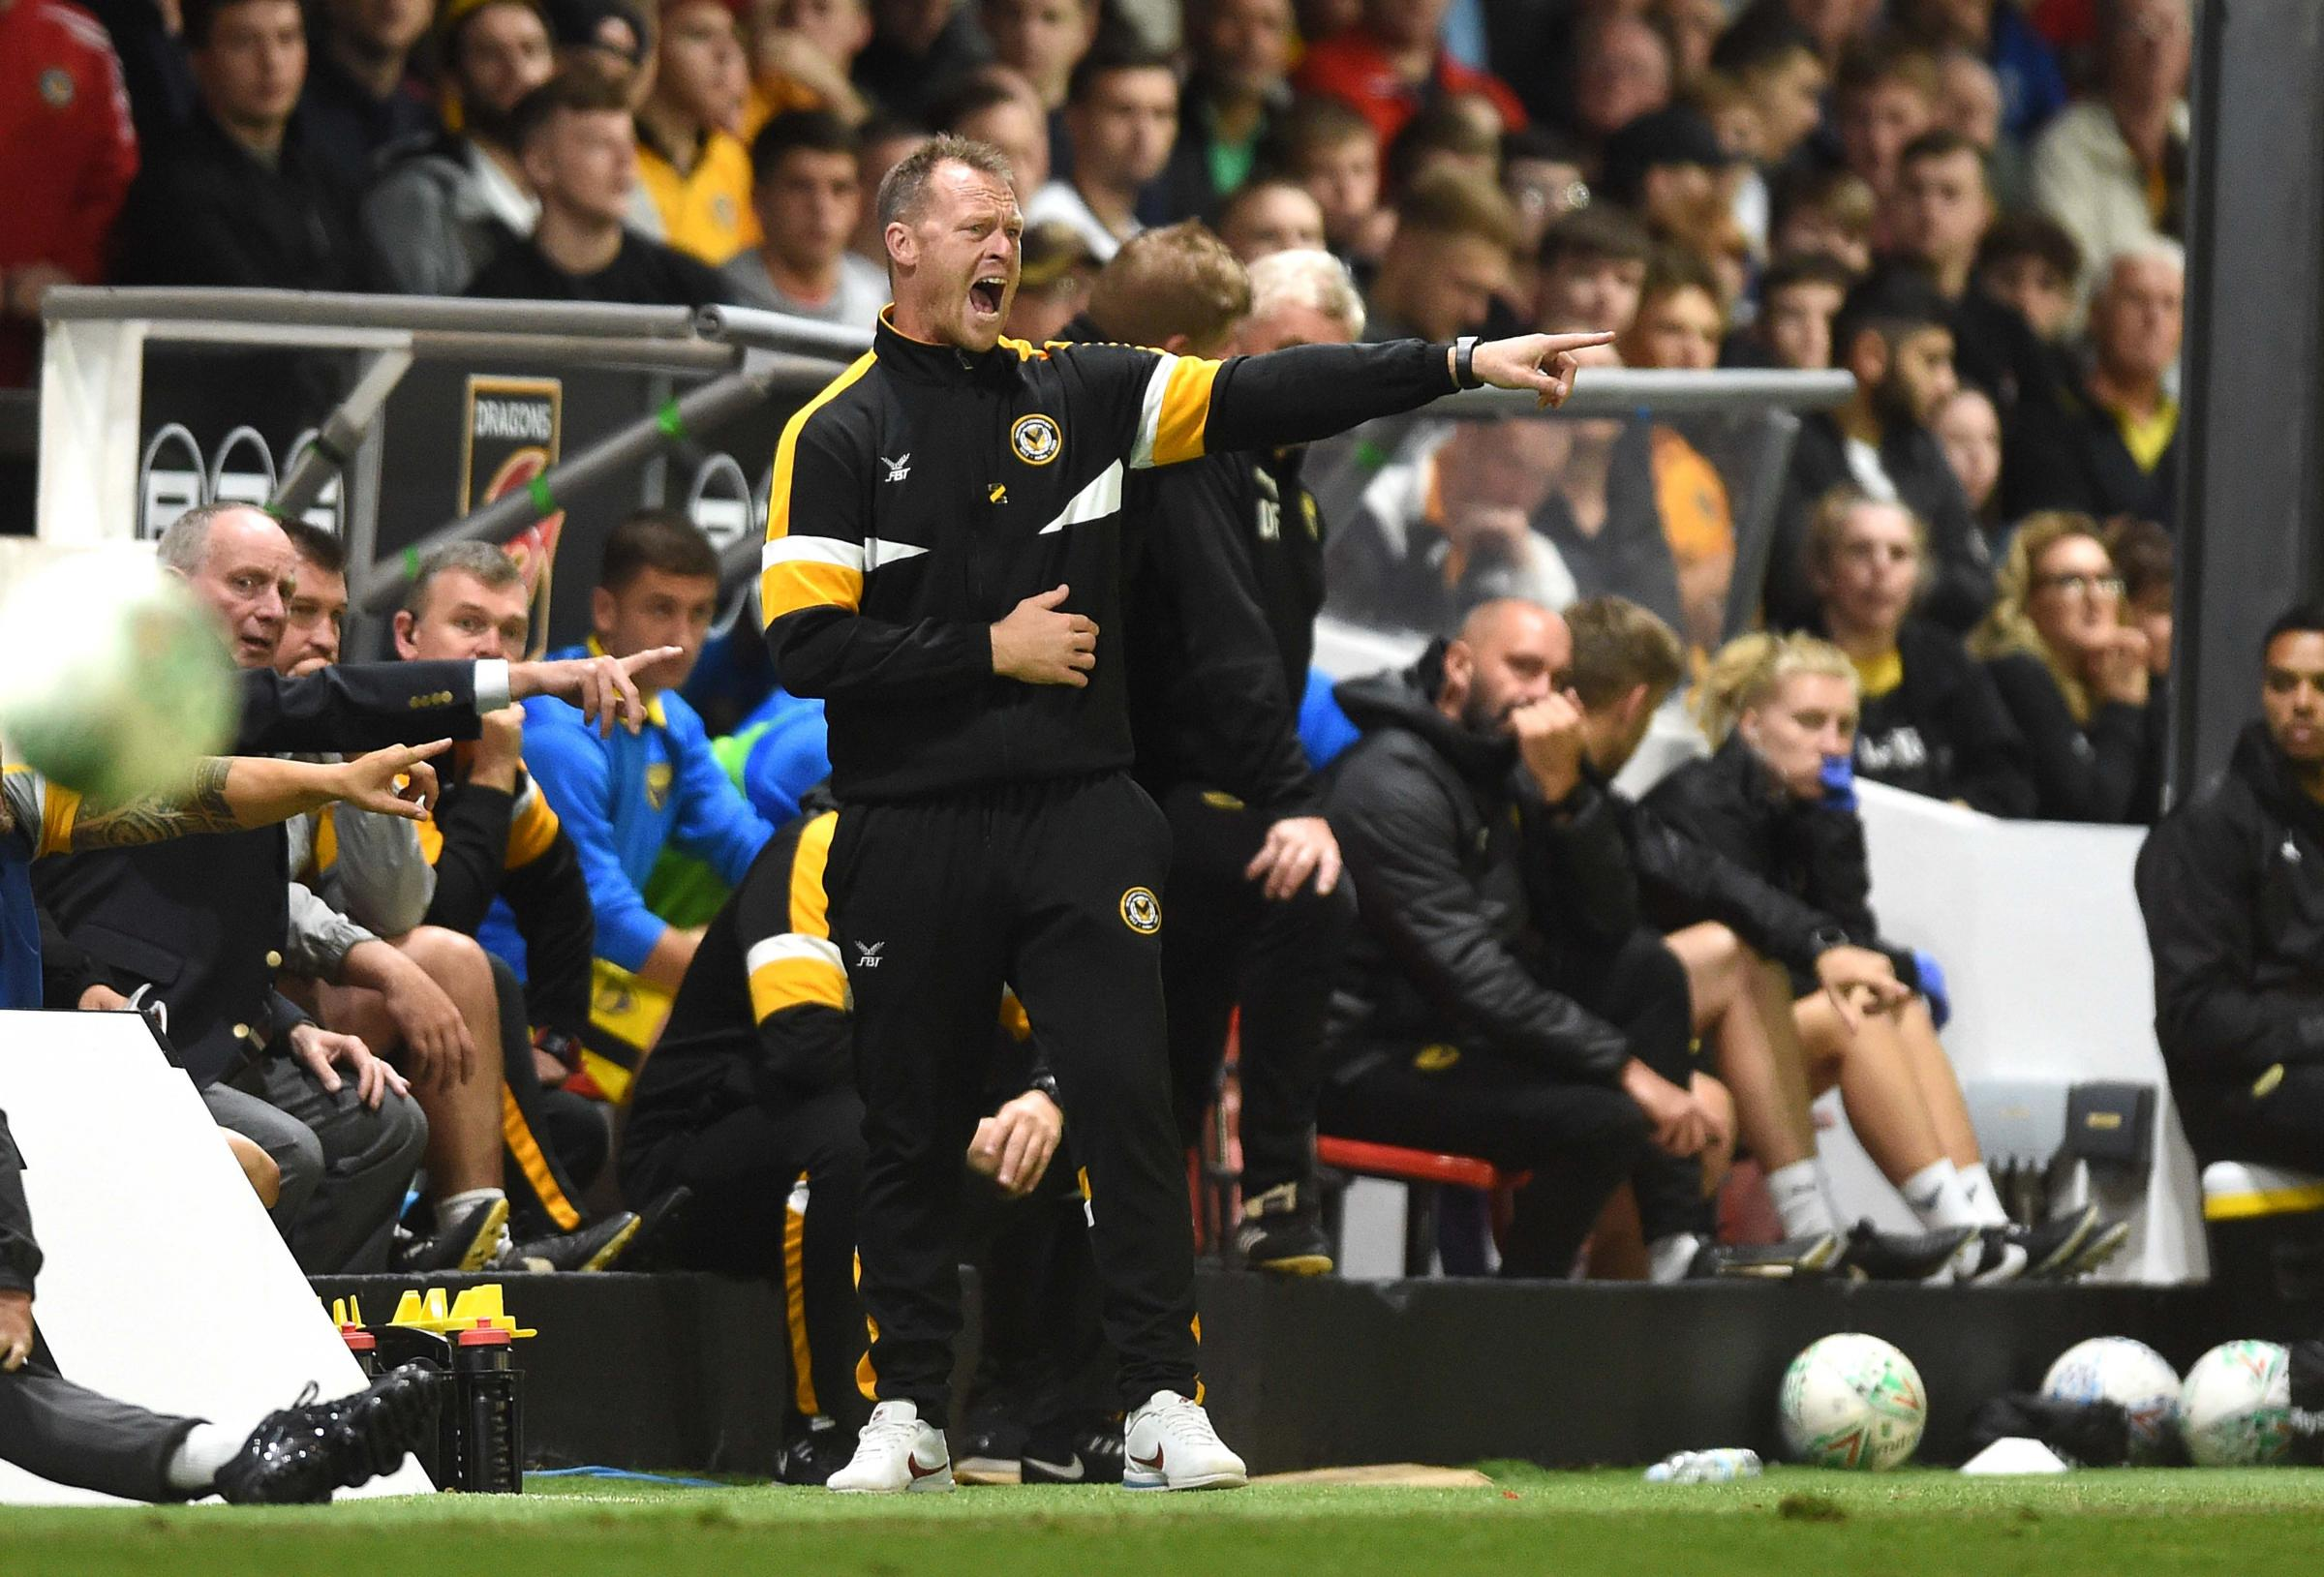 FRUSTRATED: Newport County boss Michael Flynn watched his side crash out of the Carabao Cup to Oxford United. Picture: Huw Evans Agency